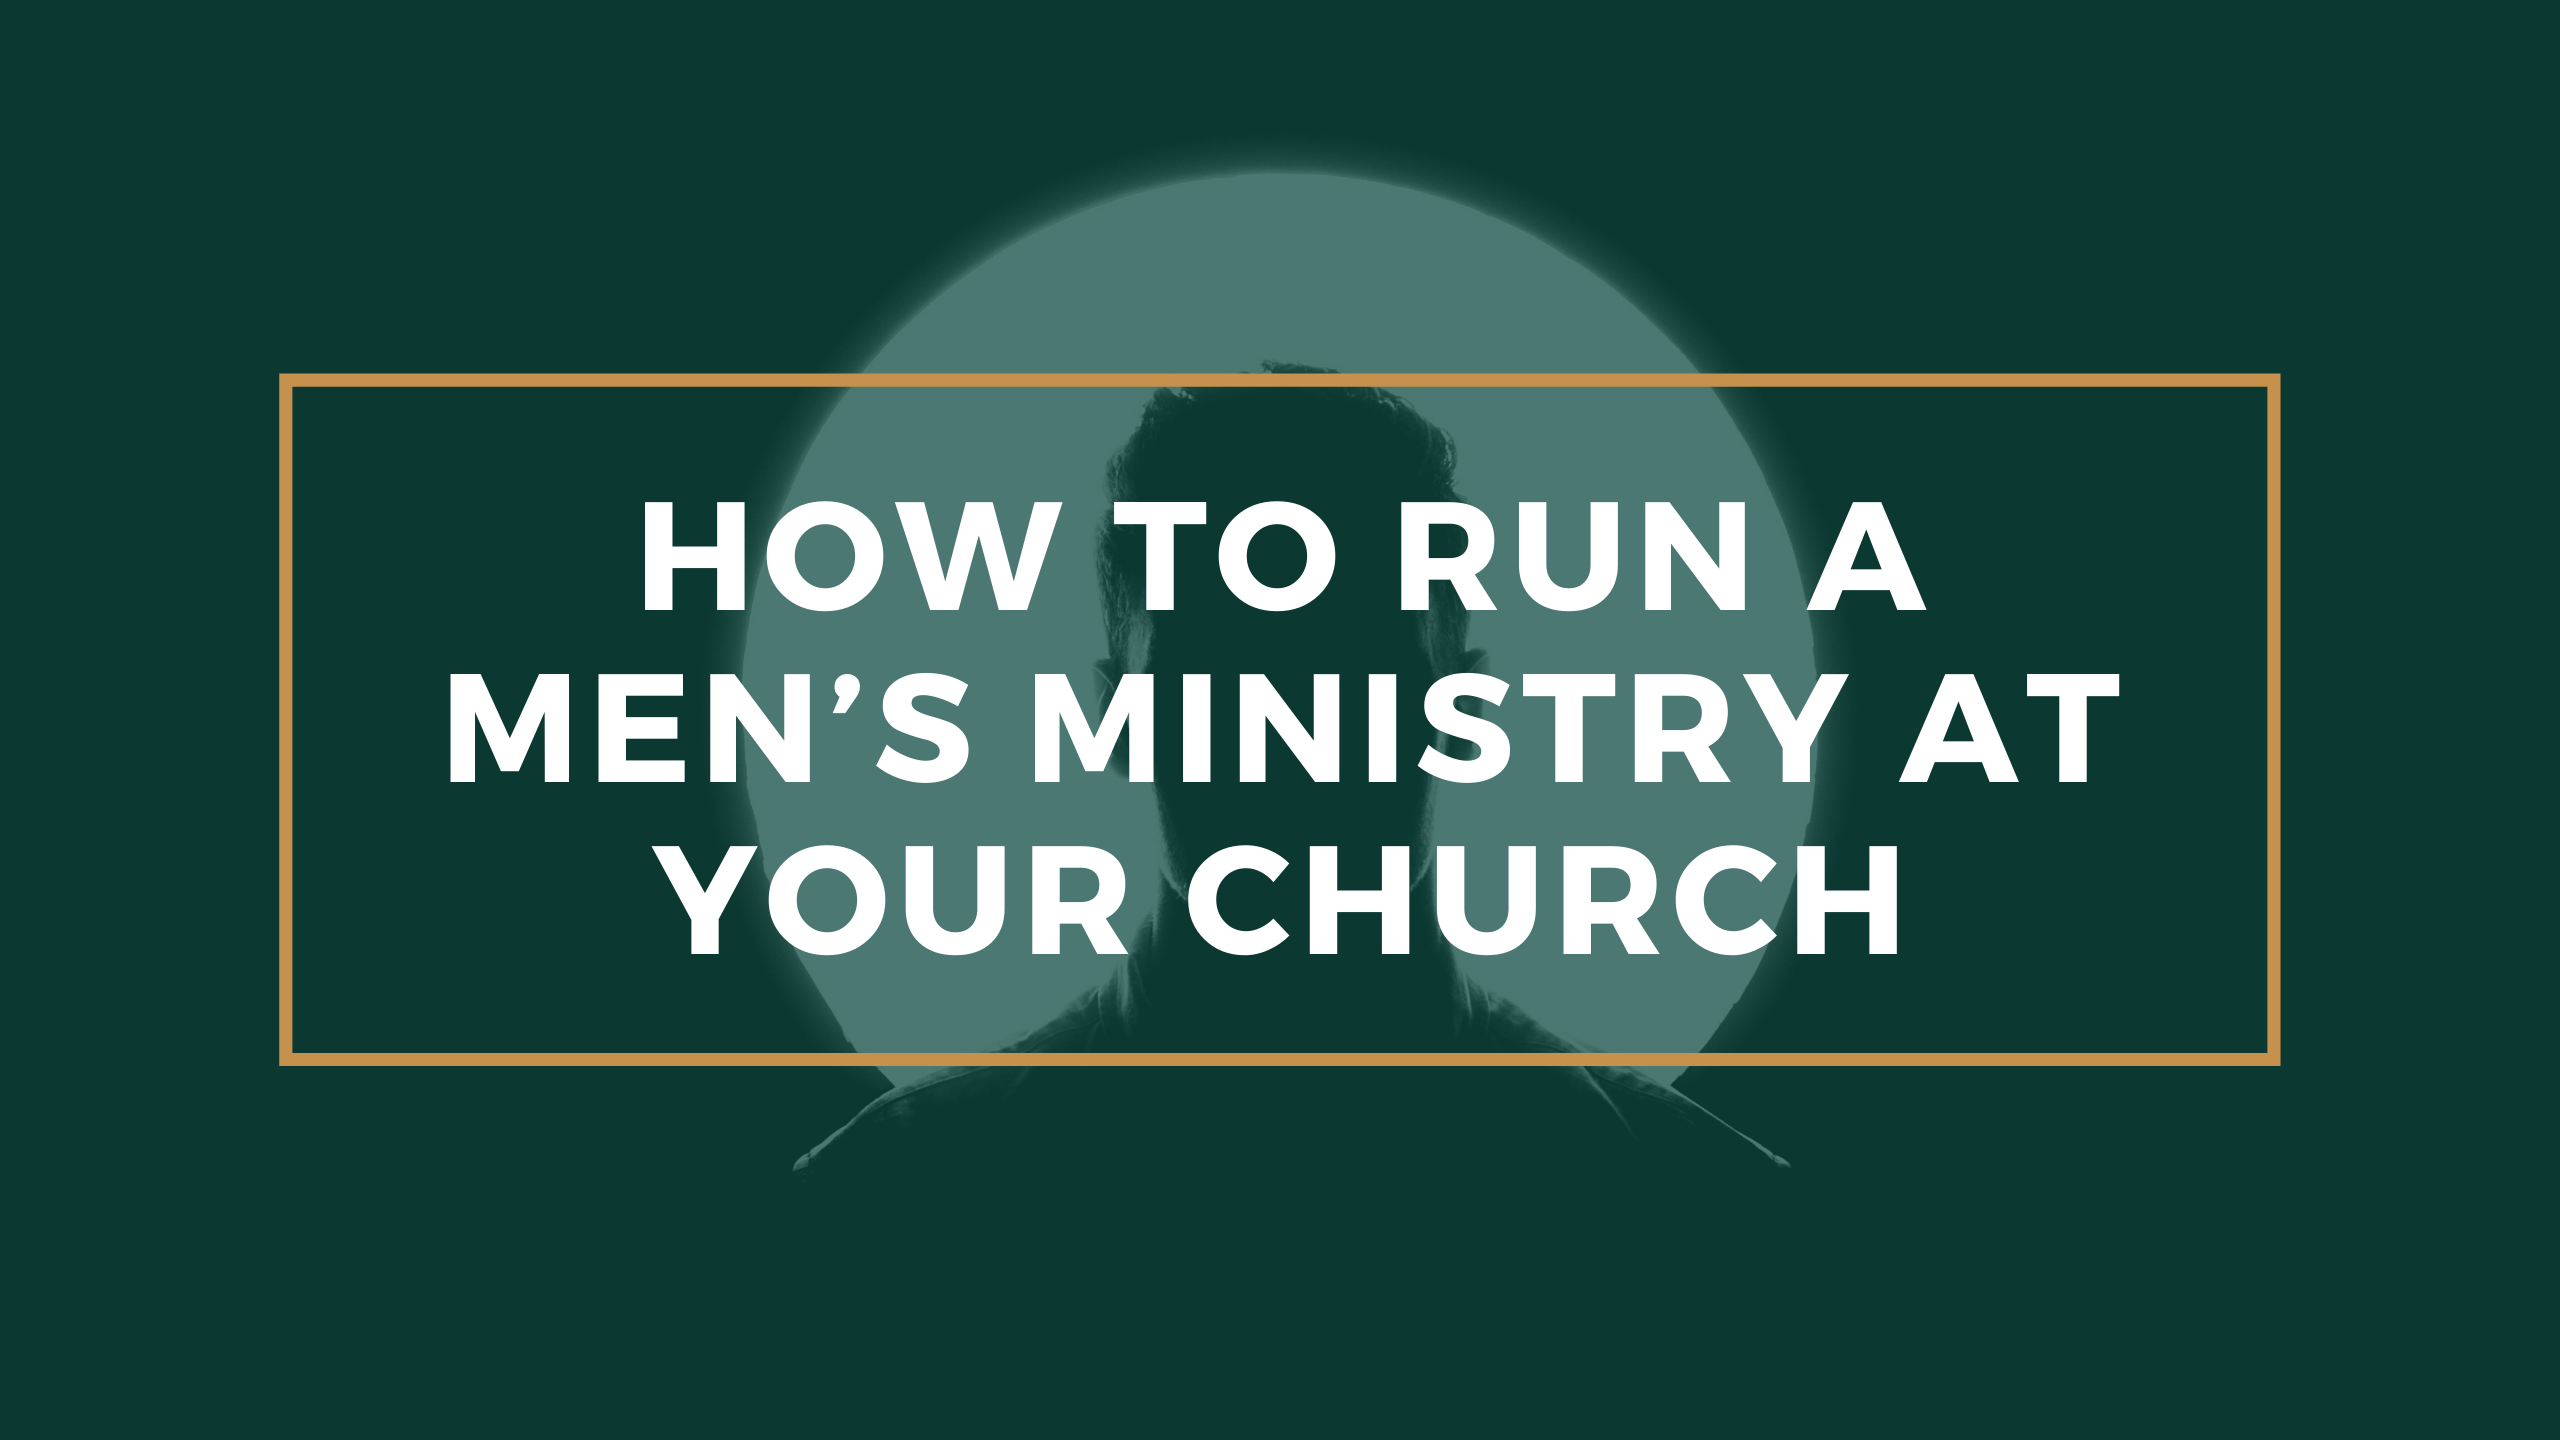 how-to-run-a-mens-ministry-at-your-church_the-malphurs-group